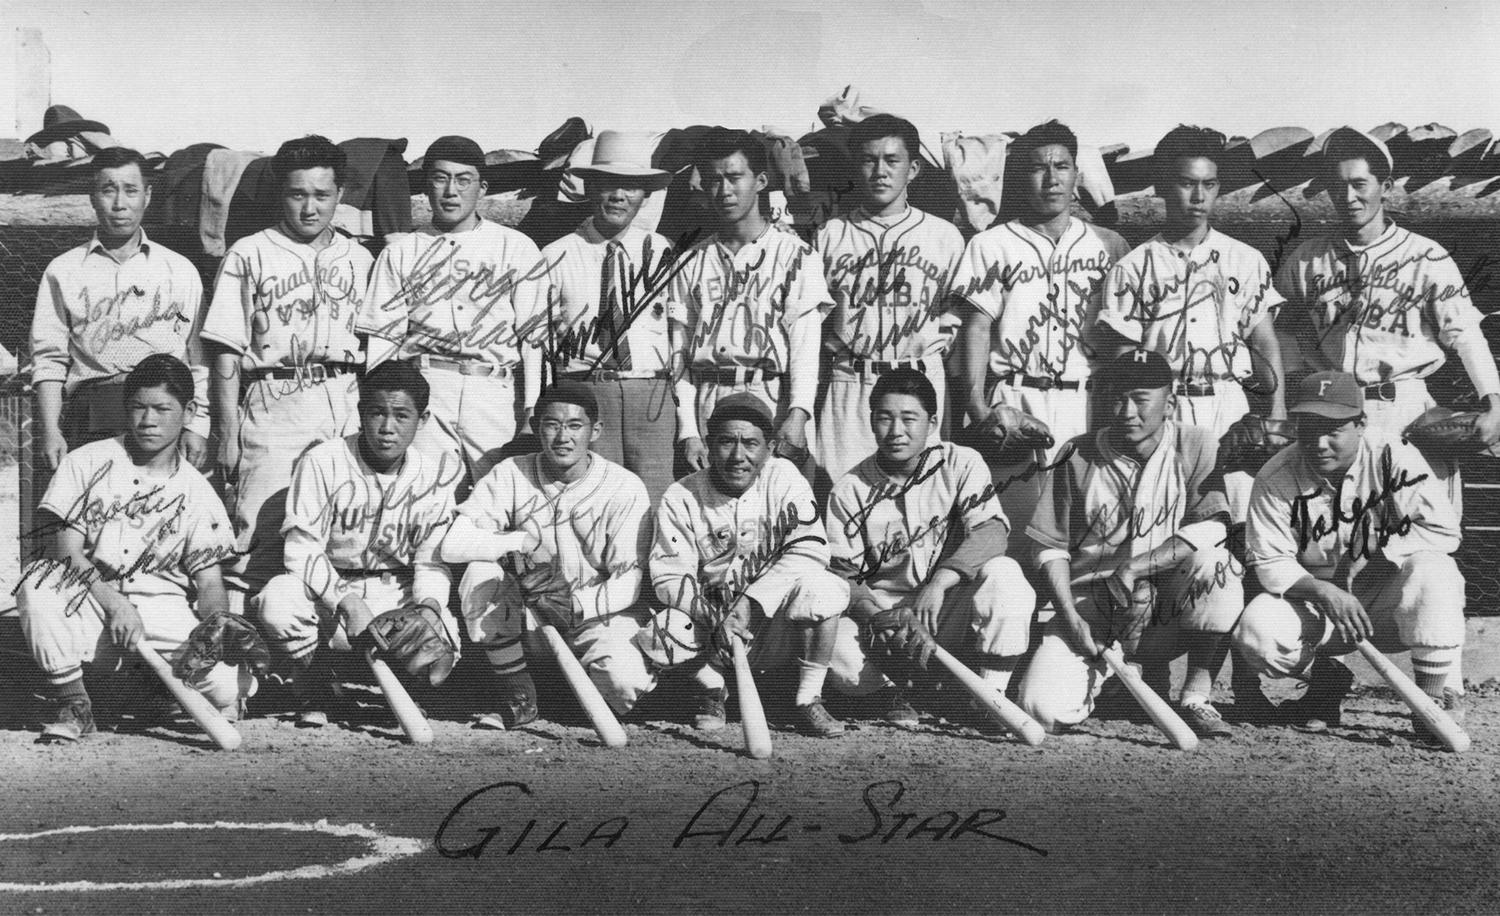 Kenichi Zenimura's 32-team league divided players by skill level. Pictured above, are his Gila Junior All-Stars, who traveled to an internment camp in Heart Mountain, Wyoming, for an inter-camp series in 1944. (Bill Staples Jr. / Nisei Baseball Research Project)